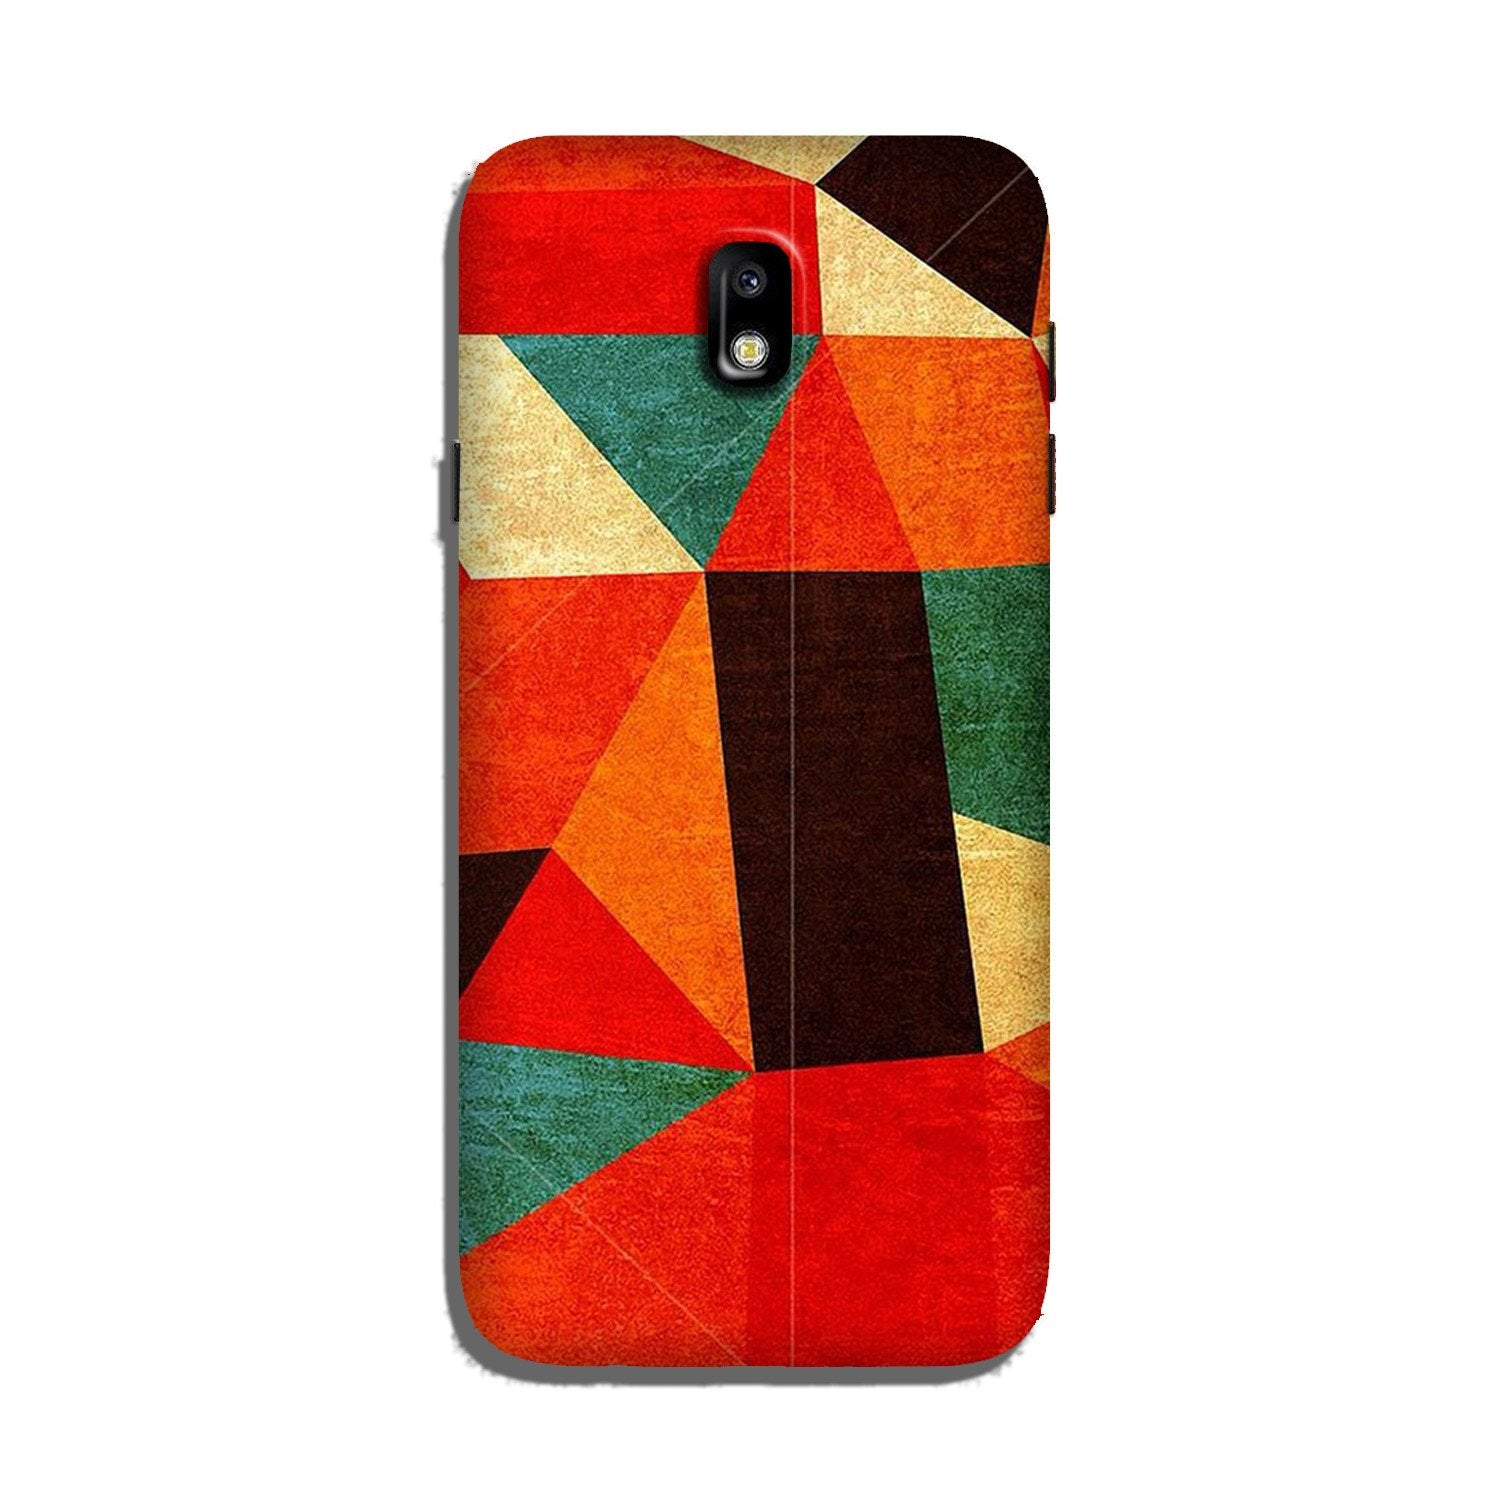 Modern Art Case for Galaxy J7 Pro (Design - 203)